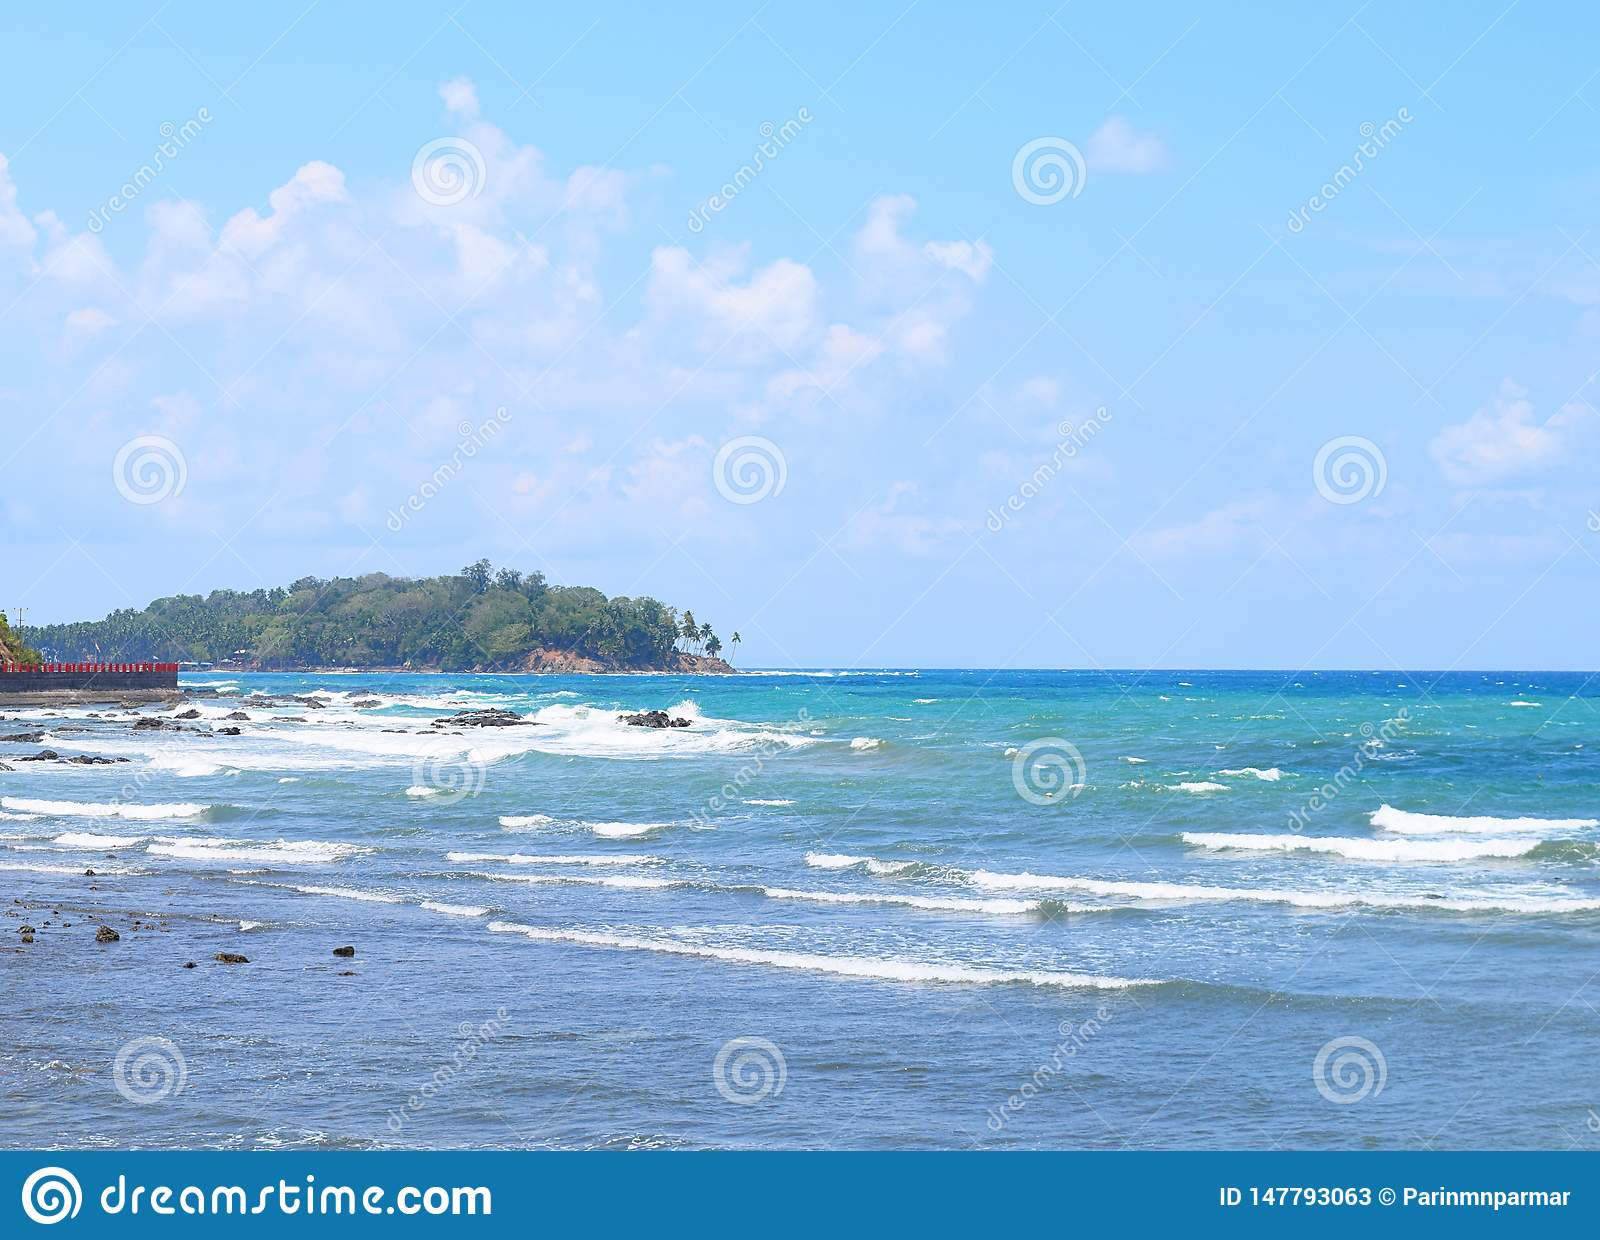 Calm Sea waves in Blue Ocean, Clear Sky and Island at Distance - Port Blair, Adnaman Nicobar Islands, India